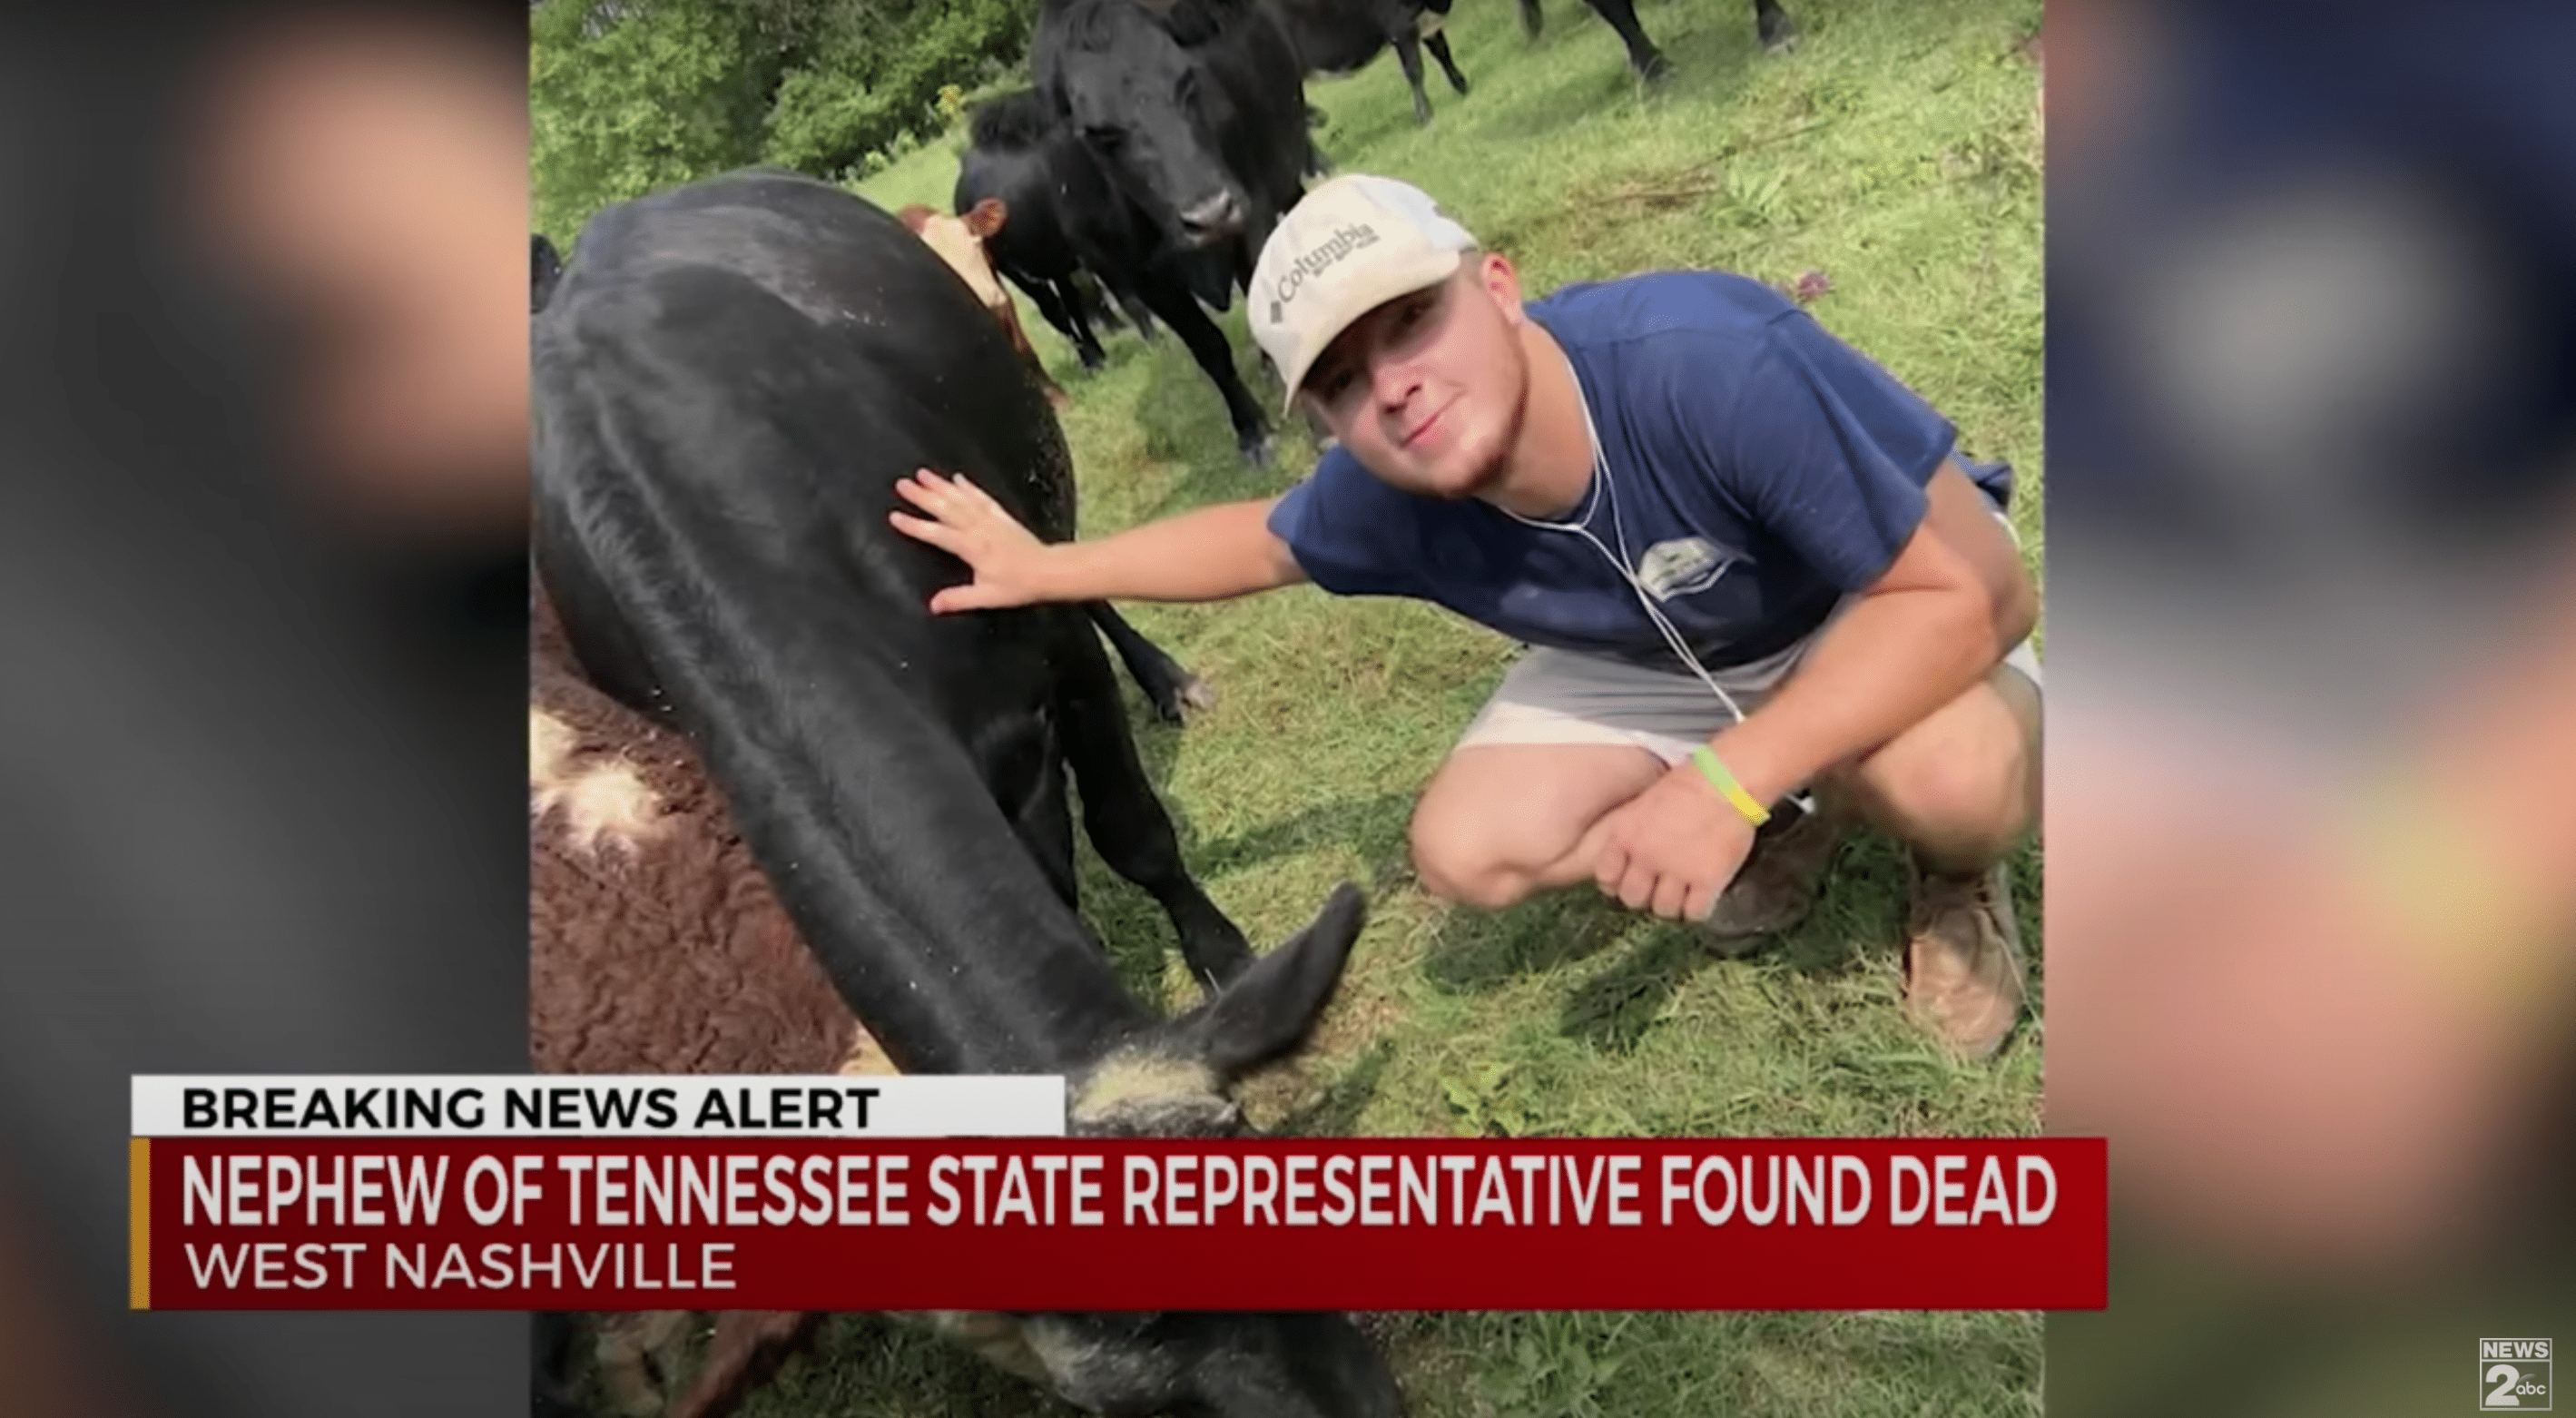 A young man who was killed is pictured prior to his death as he pets a wild animal | Photo: Youtube/WKRN News 2